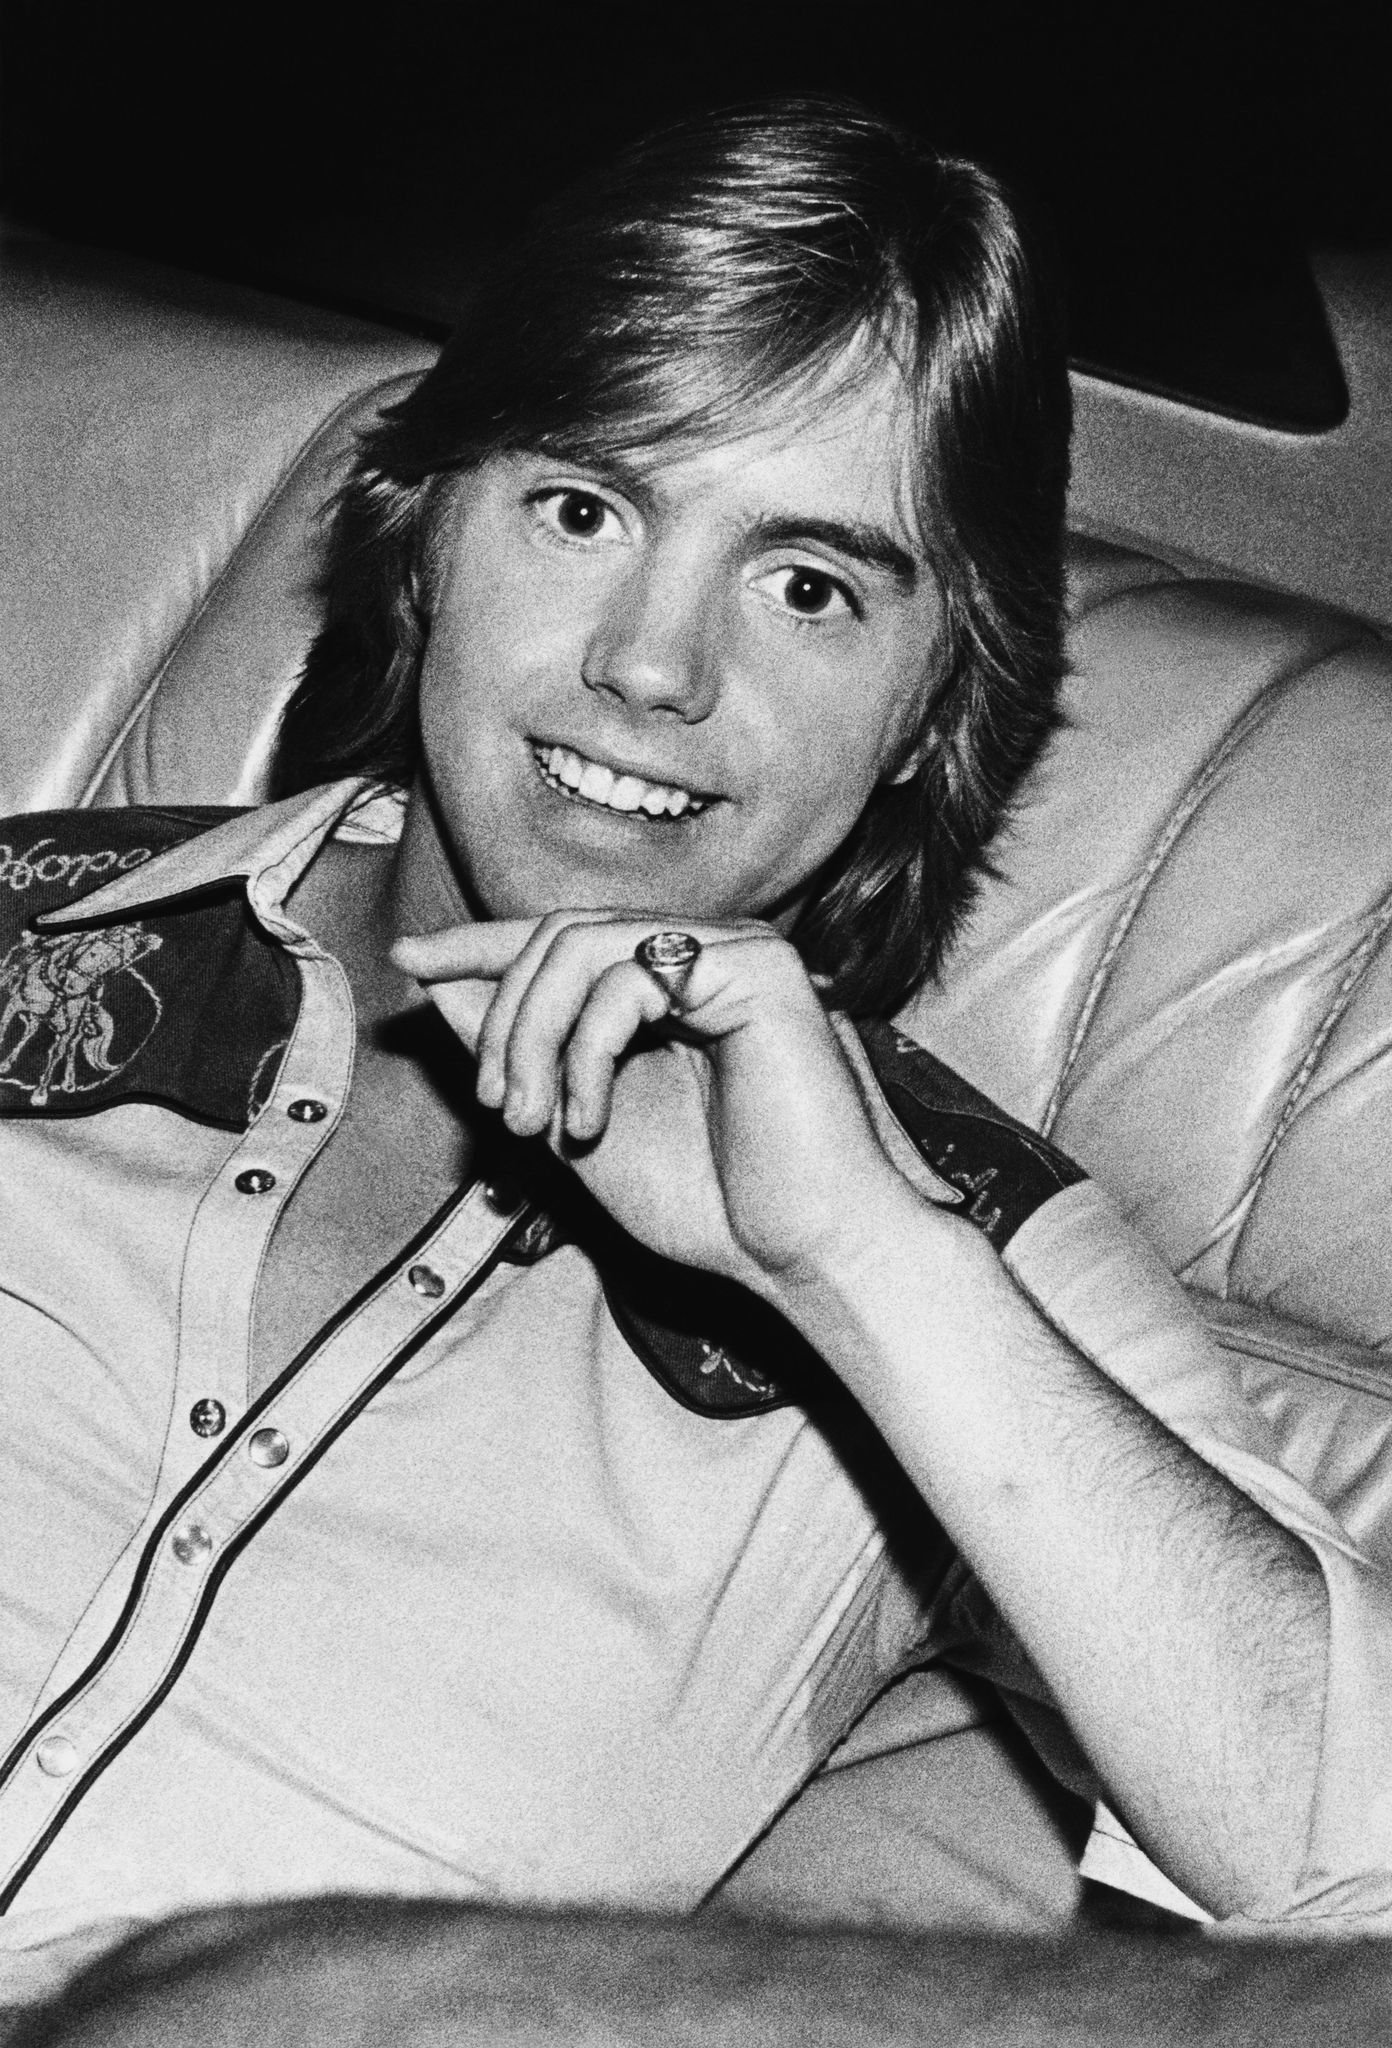 Teen idol singing sensation and son of actress Shirley Jones, Shaun Cassidy | Getty Images / Global Images Ukraine